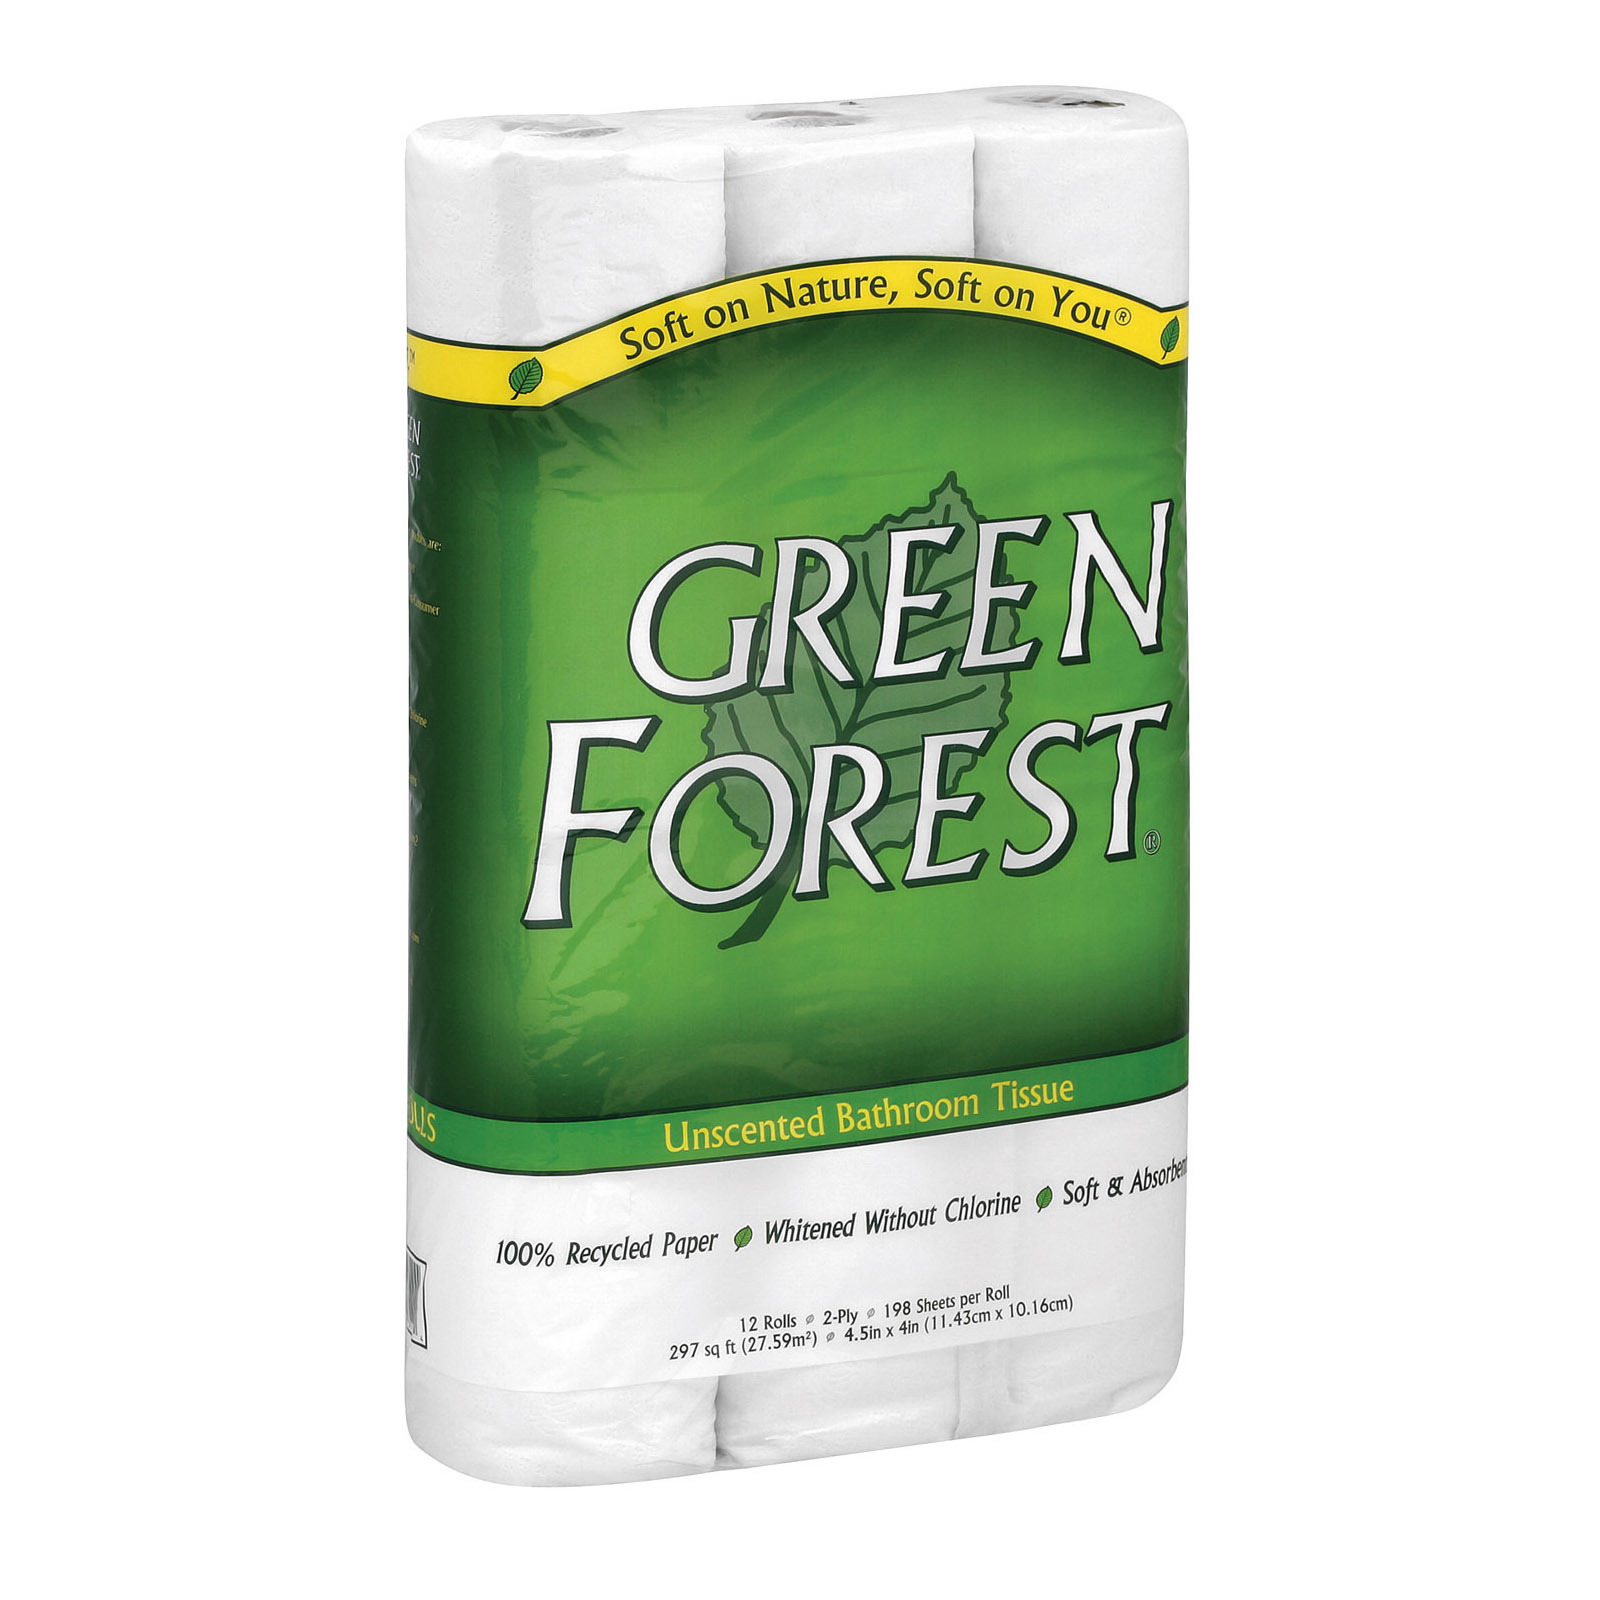 Green Forest Premium Bathroom Tissue - Unscented 2 Ply - Case of 8 - 12